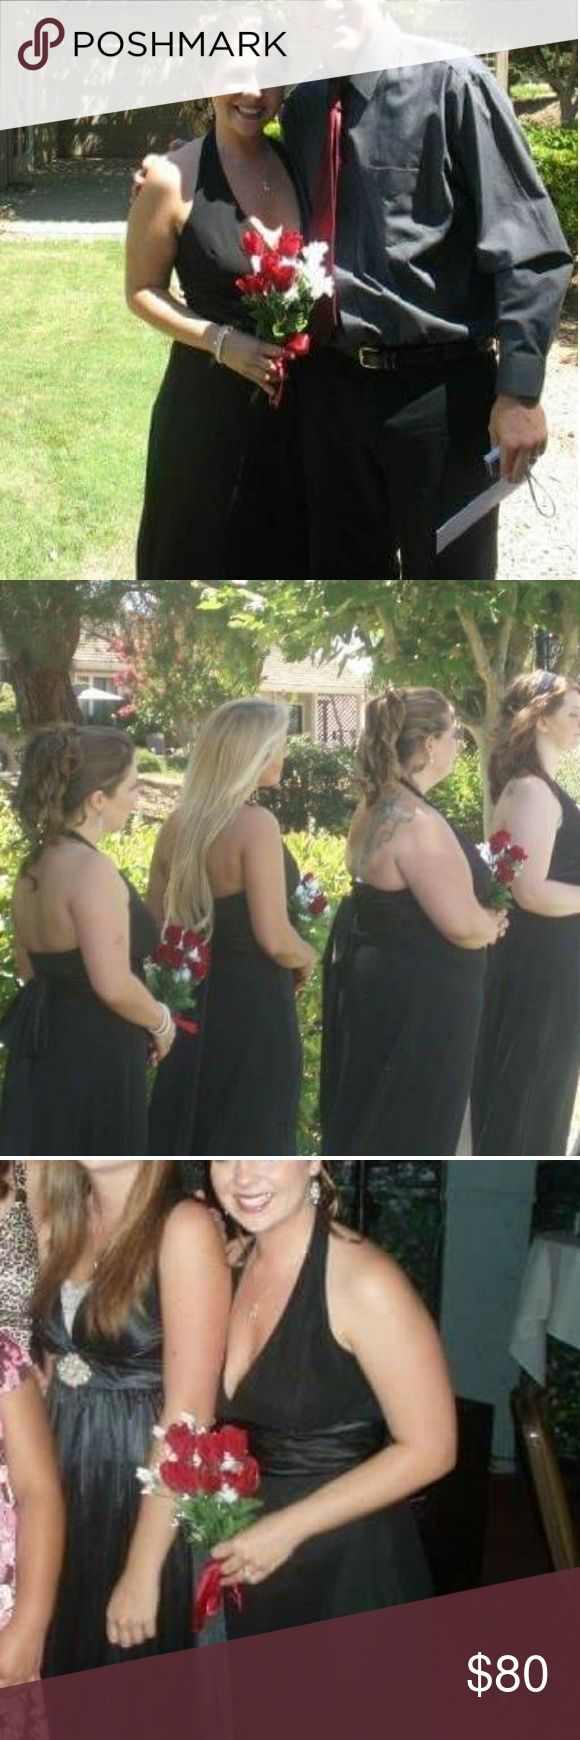 Black Floor Length Halter Chiffon Bridesmaid dress Beautiful floor length chiffon halter dress features satin accent below bodice that ties in the back. Worn once for a short wedding ceremony and photos. Excellent condition, like new. **Comes from a smoke-free home** jcpenney Dresses Maxi